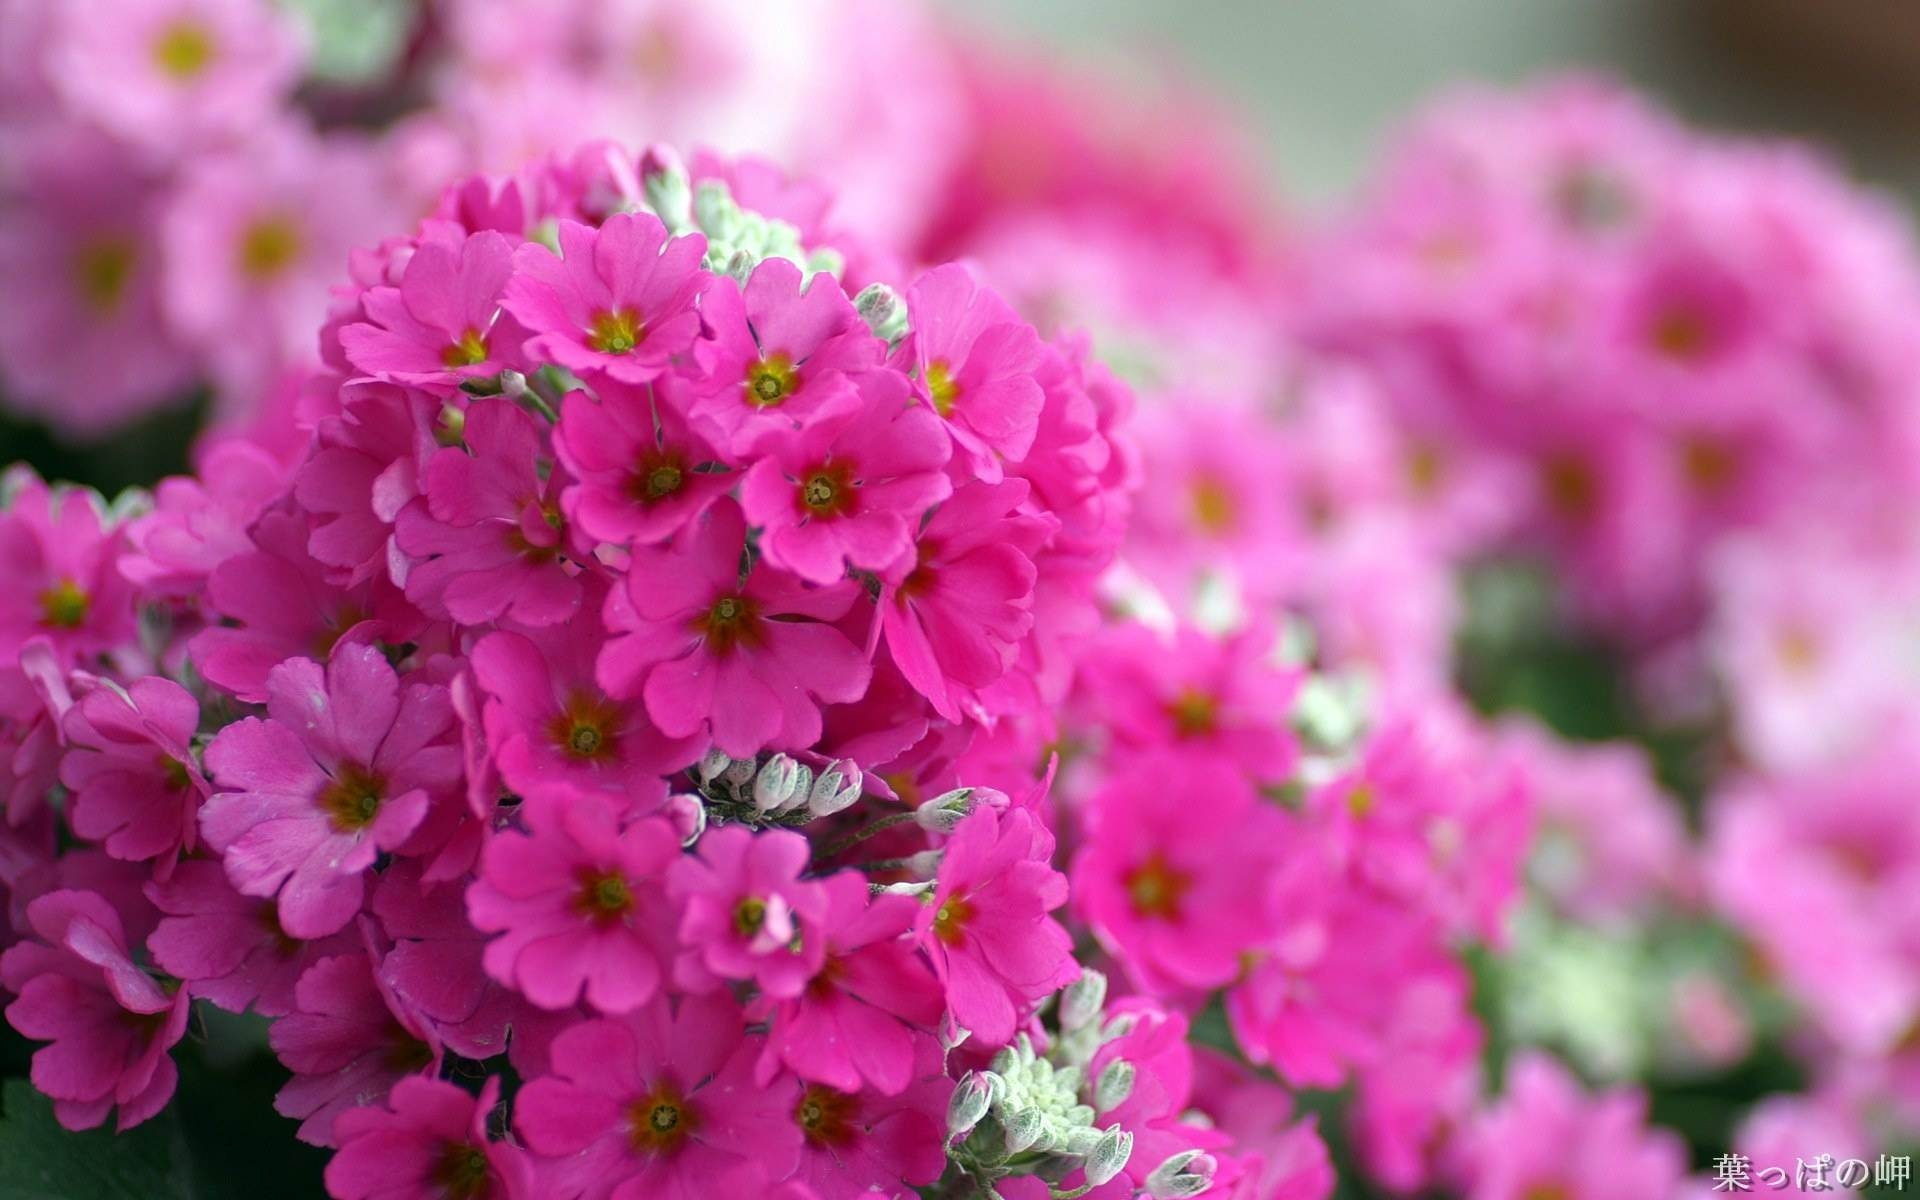 Pink Flowers Wallpaper Amazon Walls HD Wallpapers Backgrounds p 1920x1200